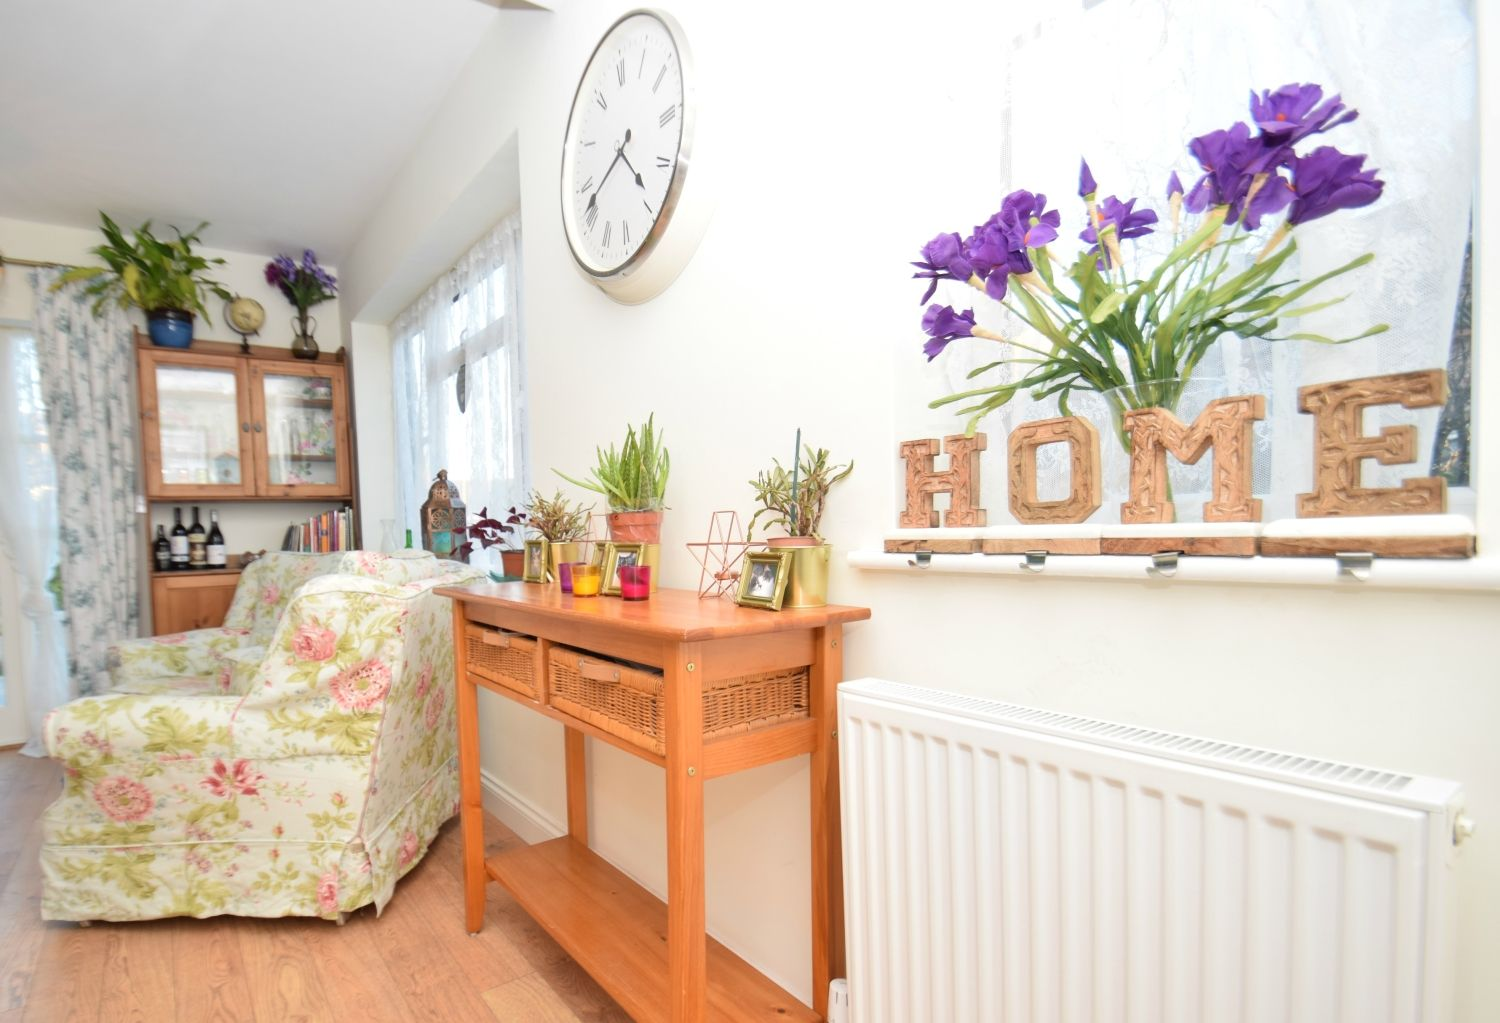 4 bed semi-detached for sale in Upland Grove, Bromsgrove, B61 11